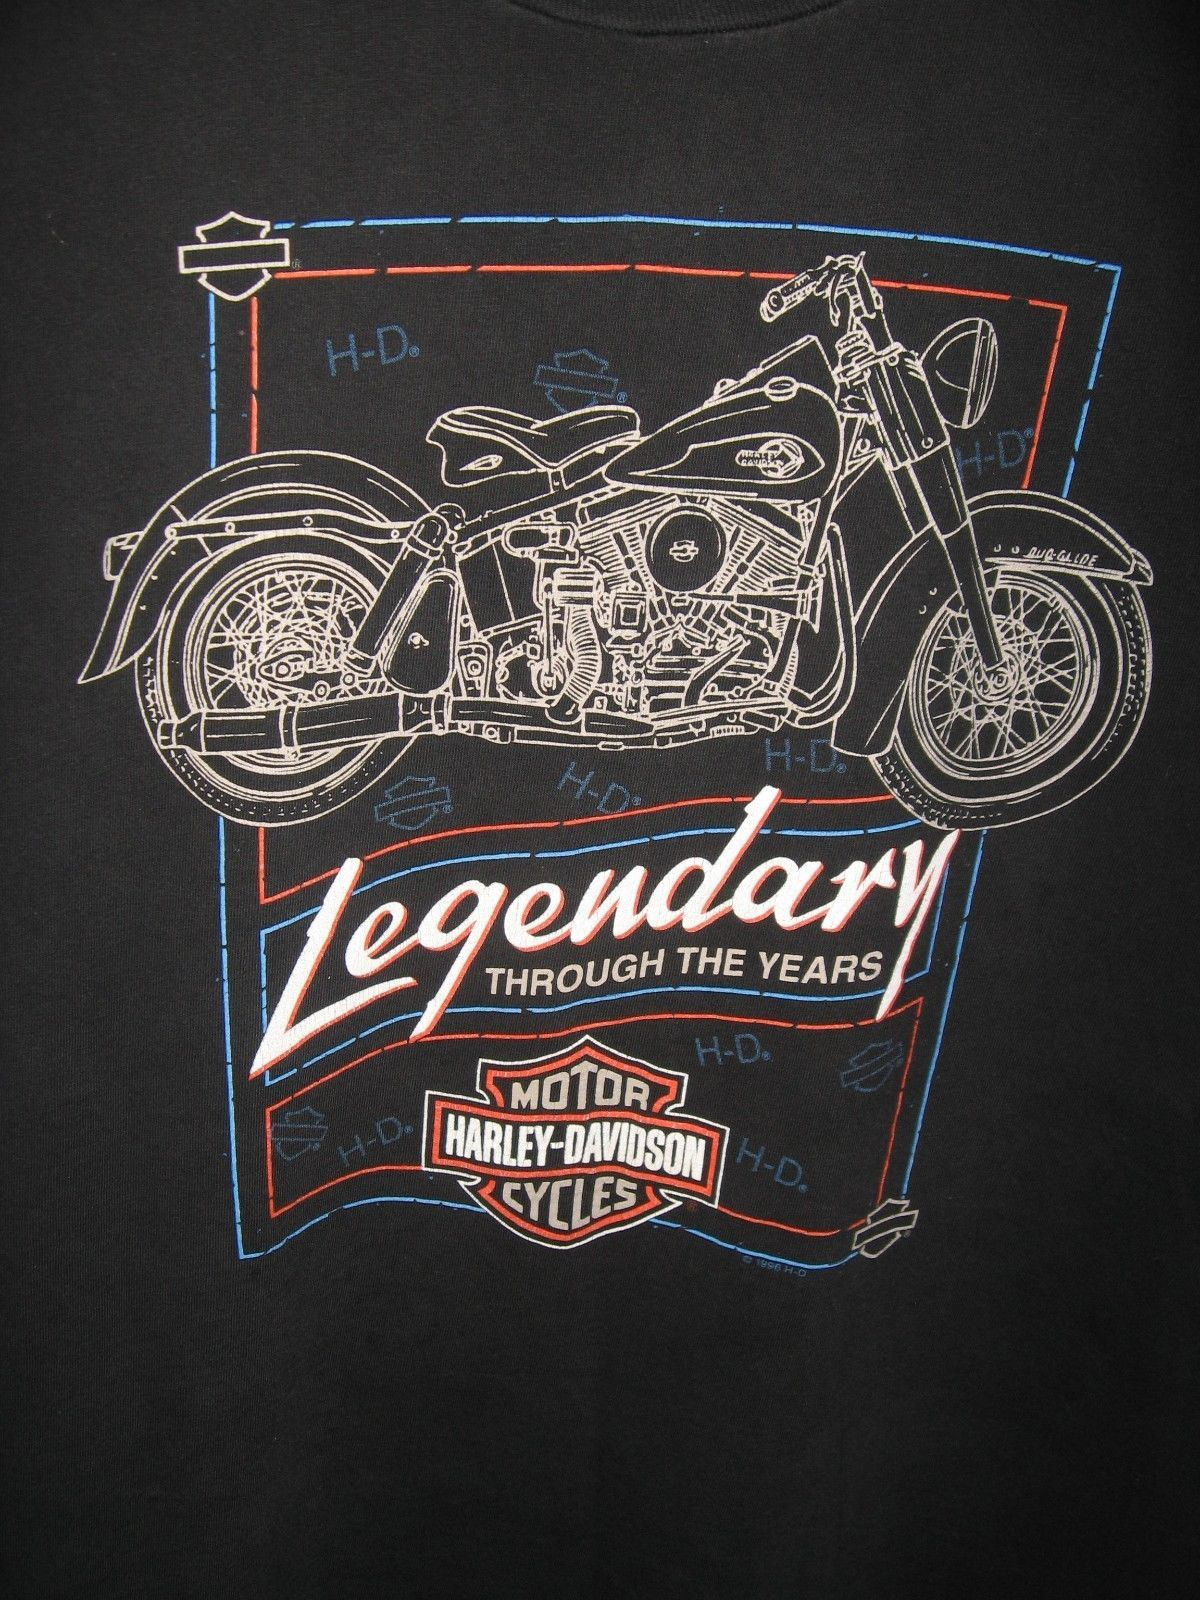 Barnett harley davidson coupon codes / Crate and barrel cyber monday